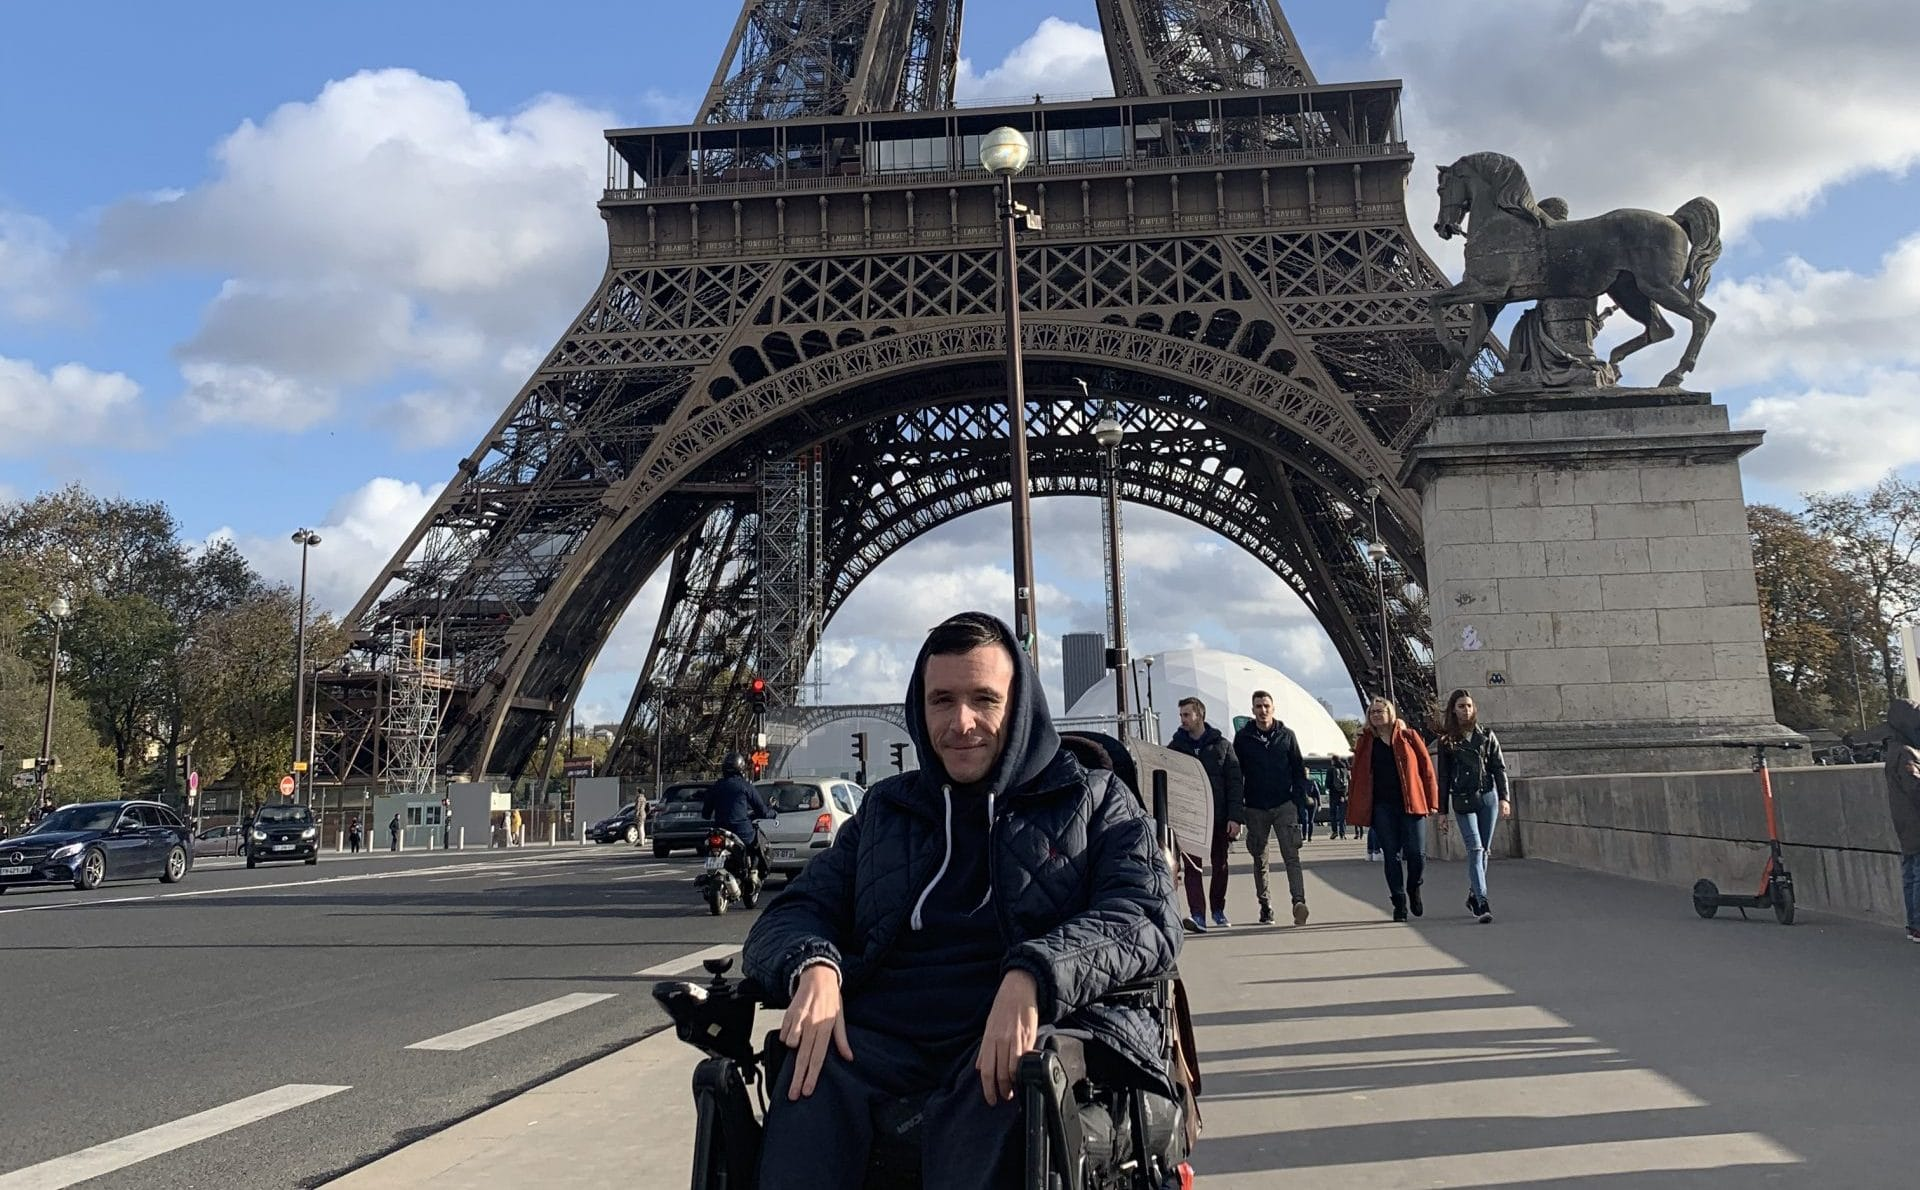 Josh is sat in his wheelchair with the Effiel tower in the background and a statue of a horse to his right.